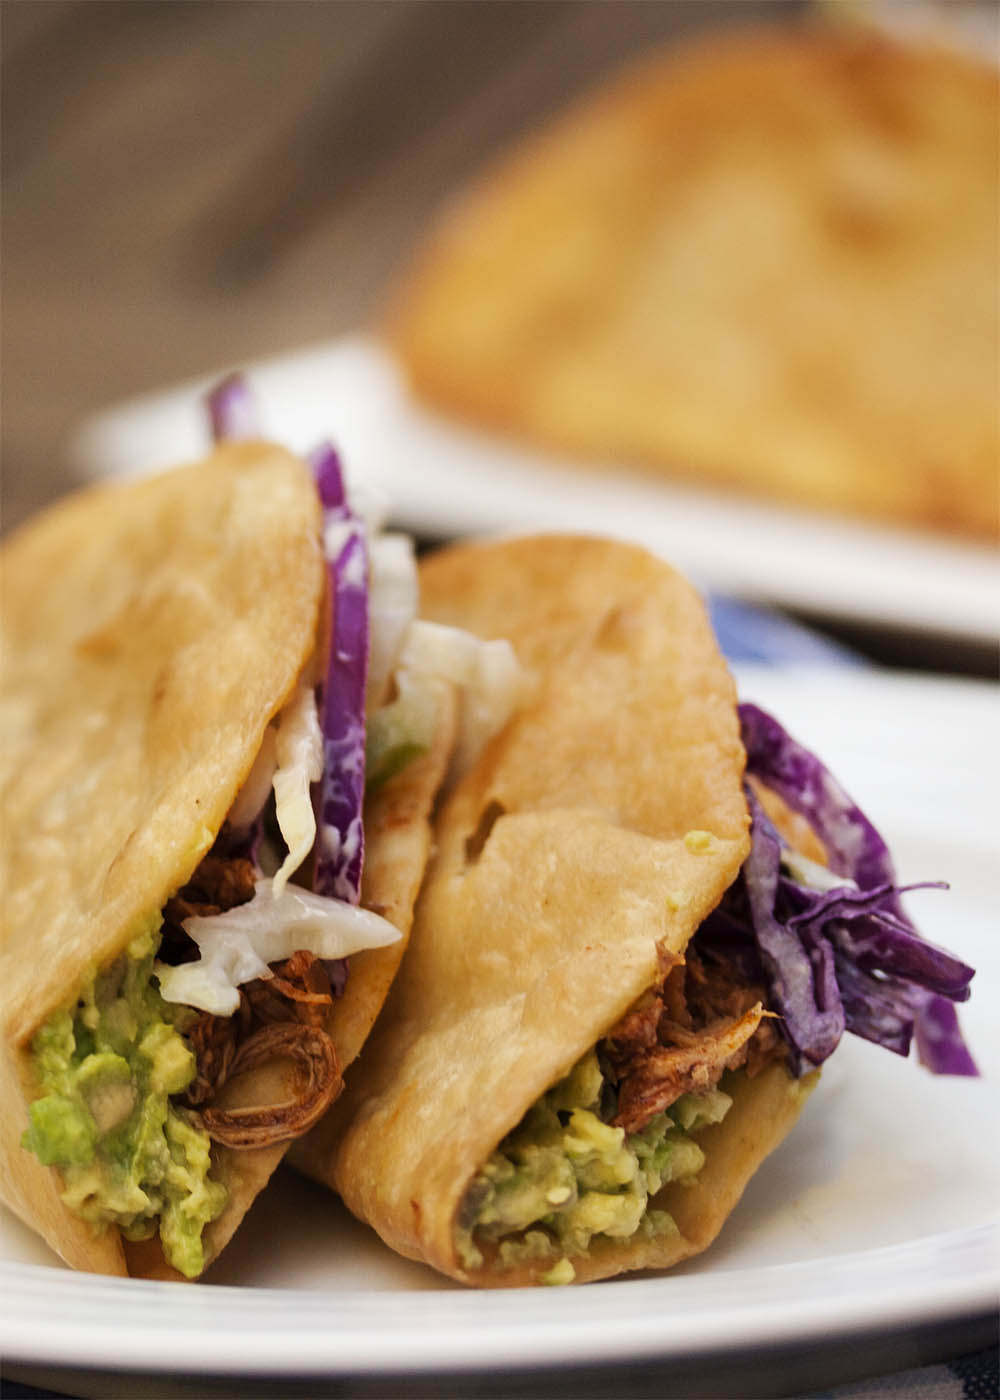 Braised Pulled Chicken Tacos - These tacos feature slow cooked chicken ...